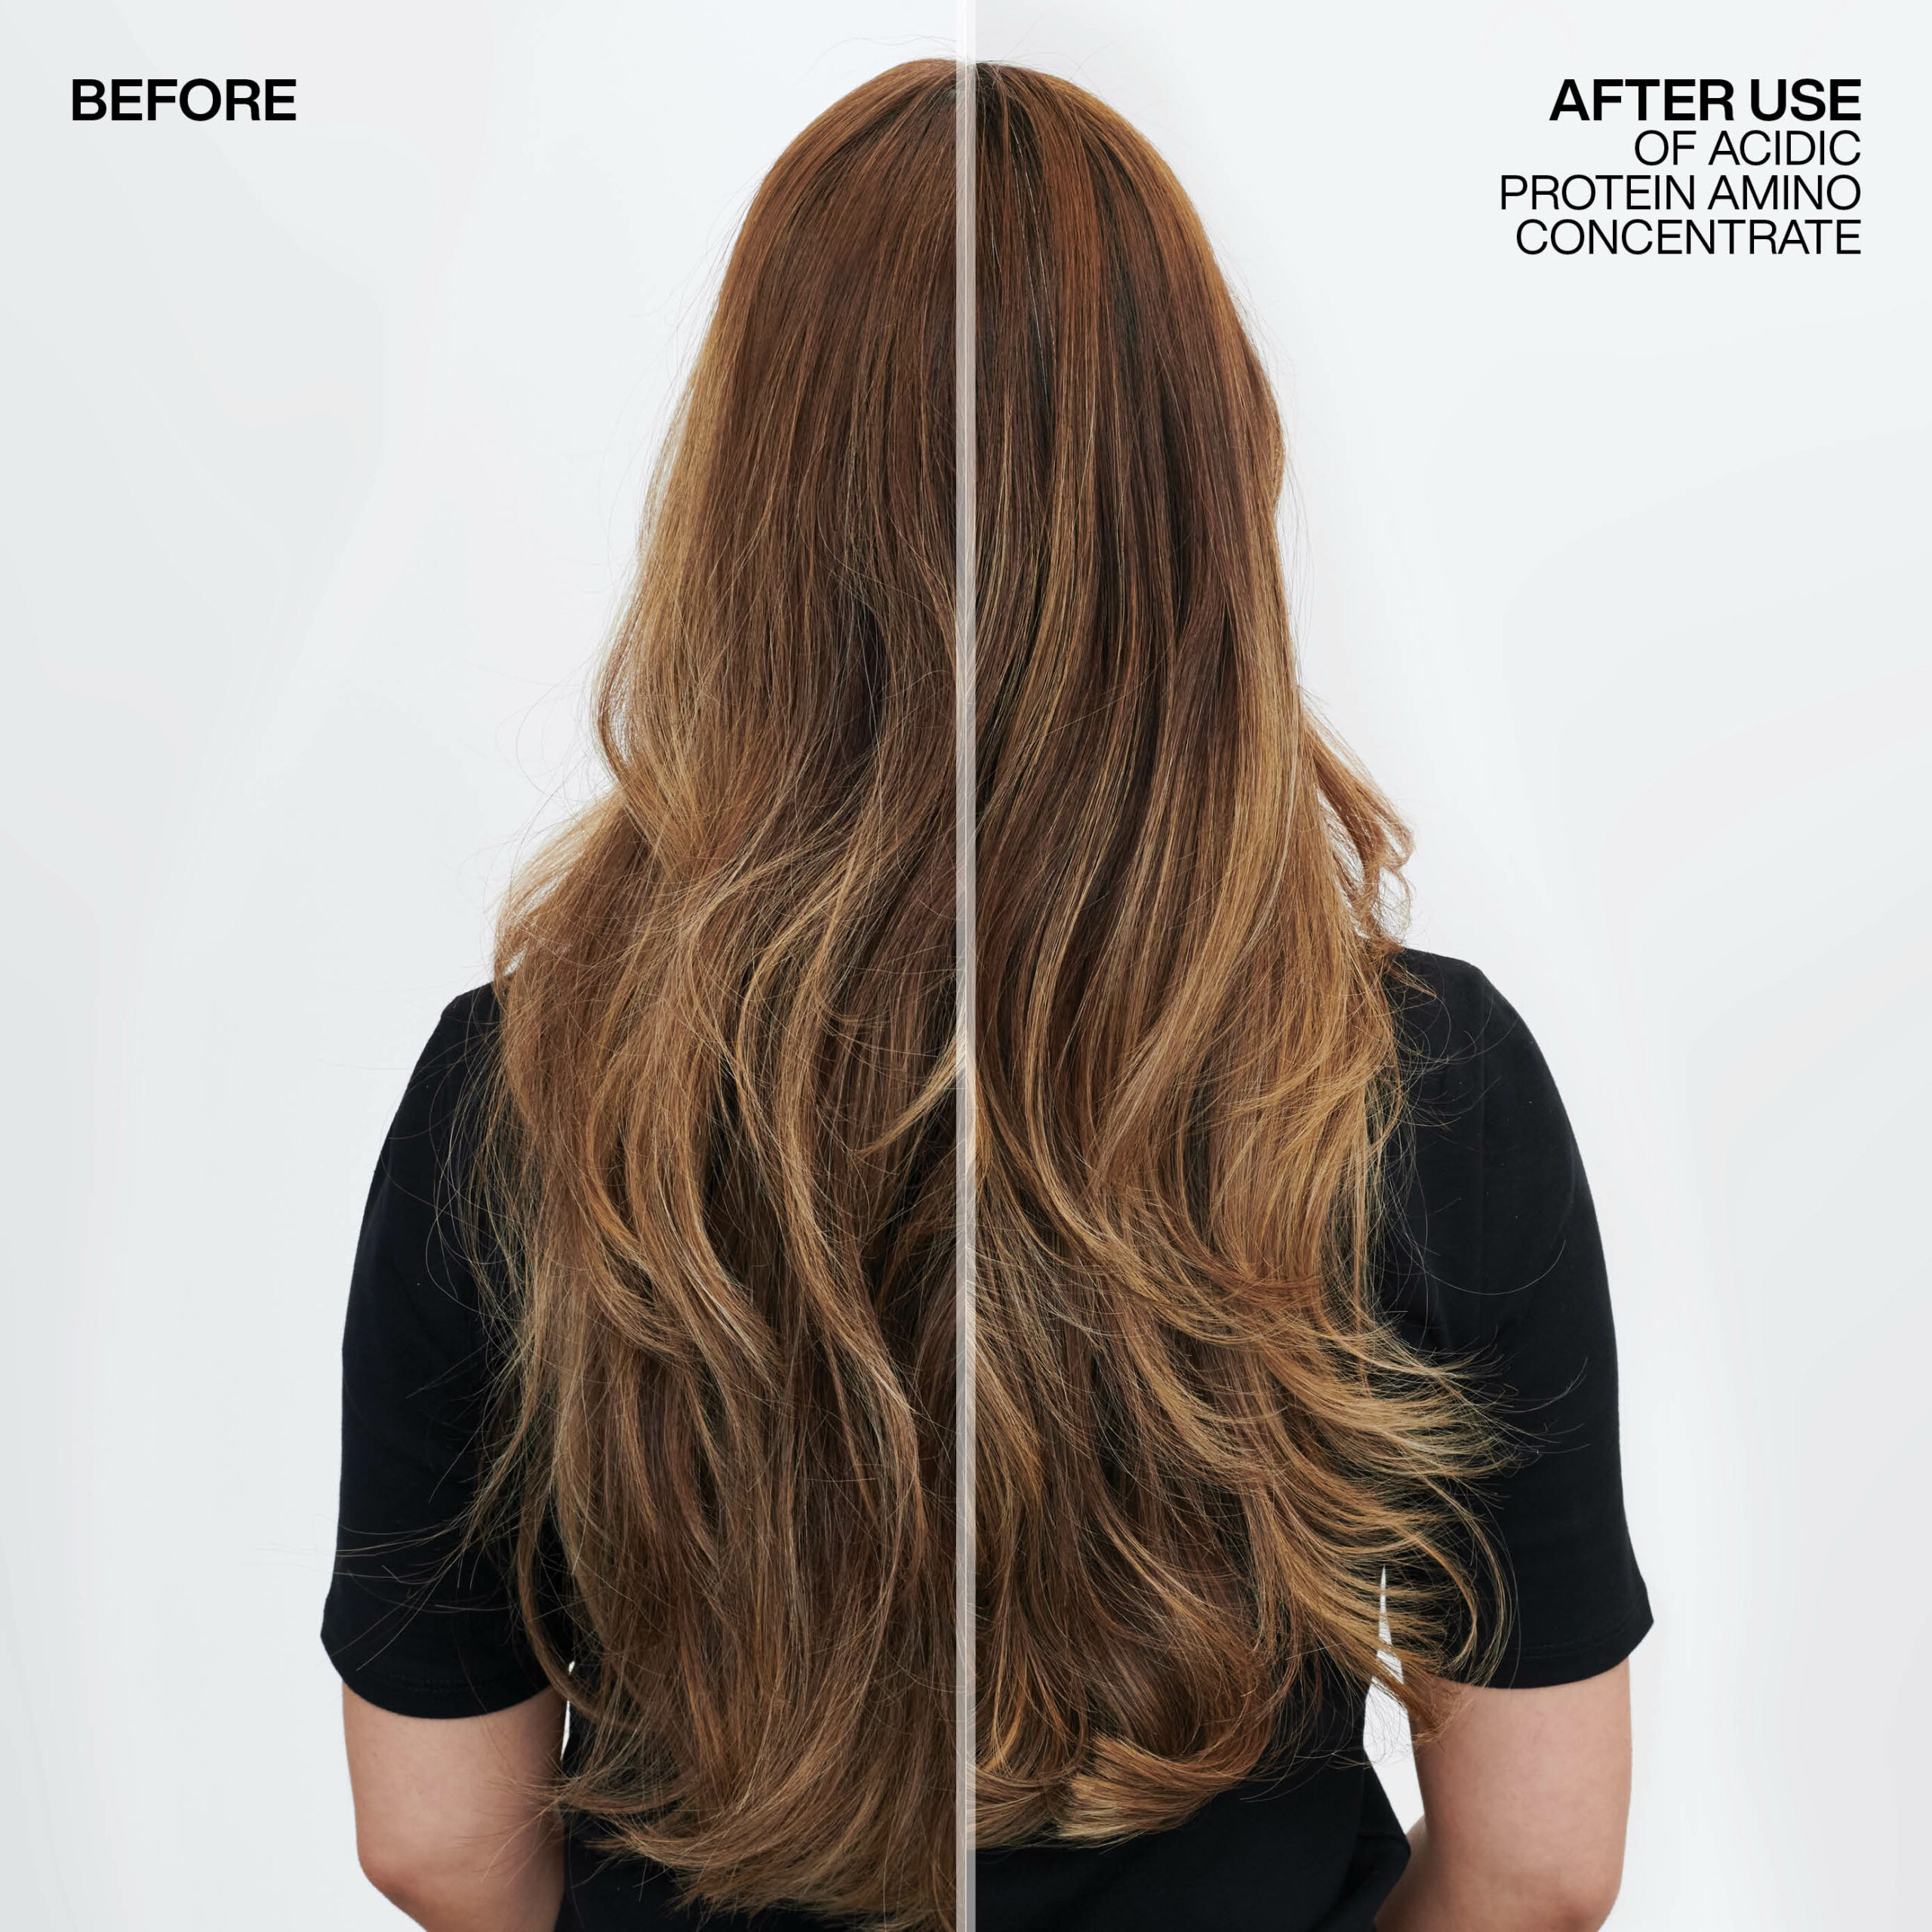 Redken's new Acidic Concentrate Hair Care System can quickly deliver impressive results